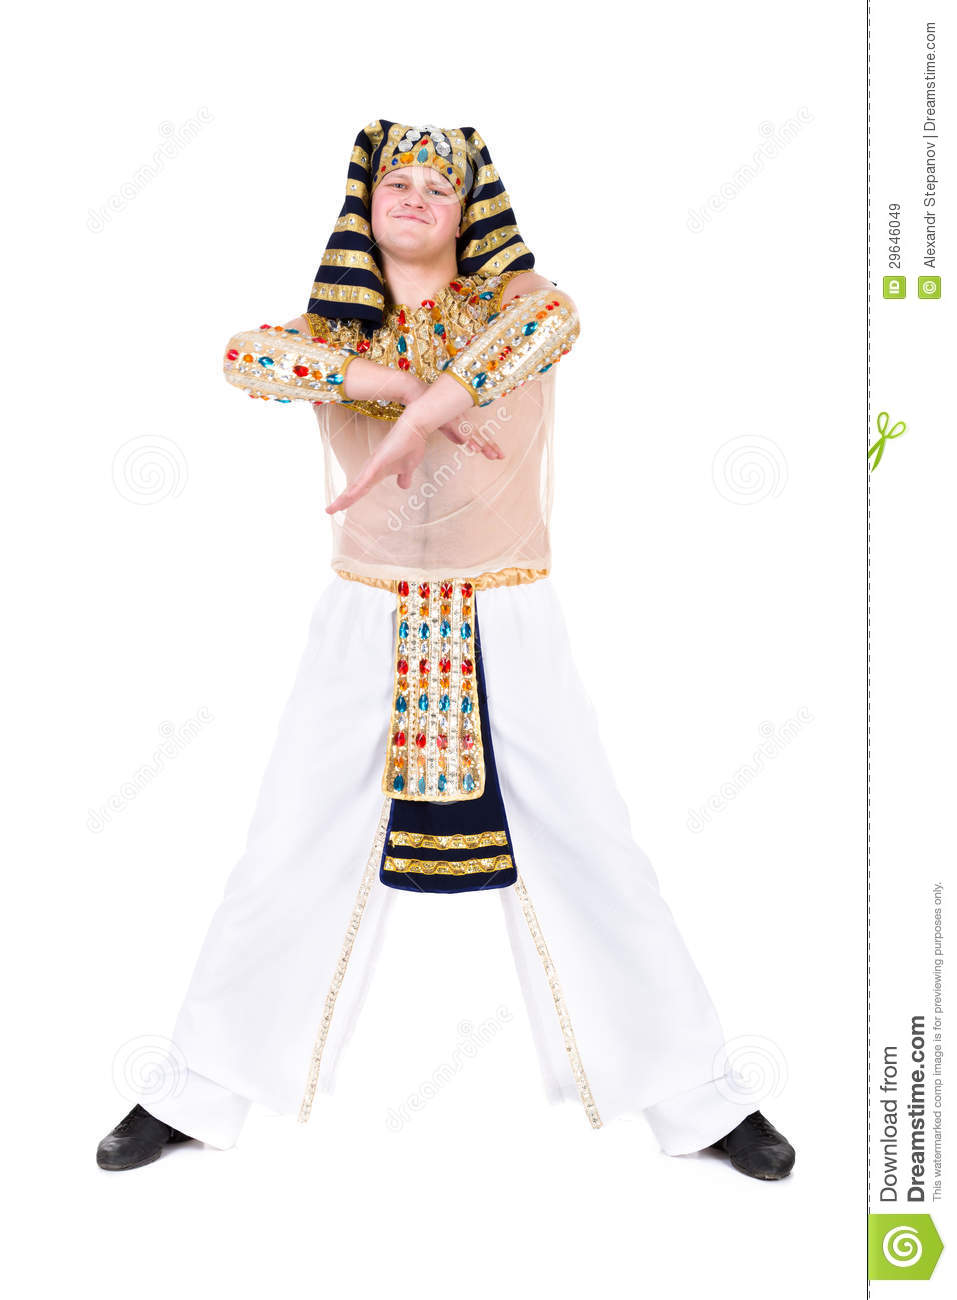 Dancing Pharaoh Wearing A Egyptian Costume. Royalty Free Stock ...